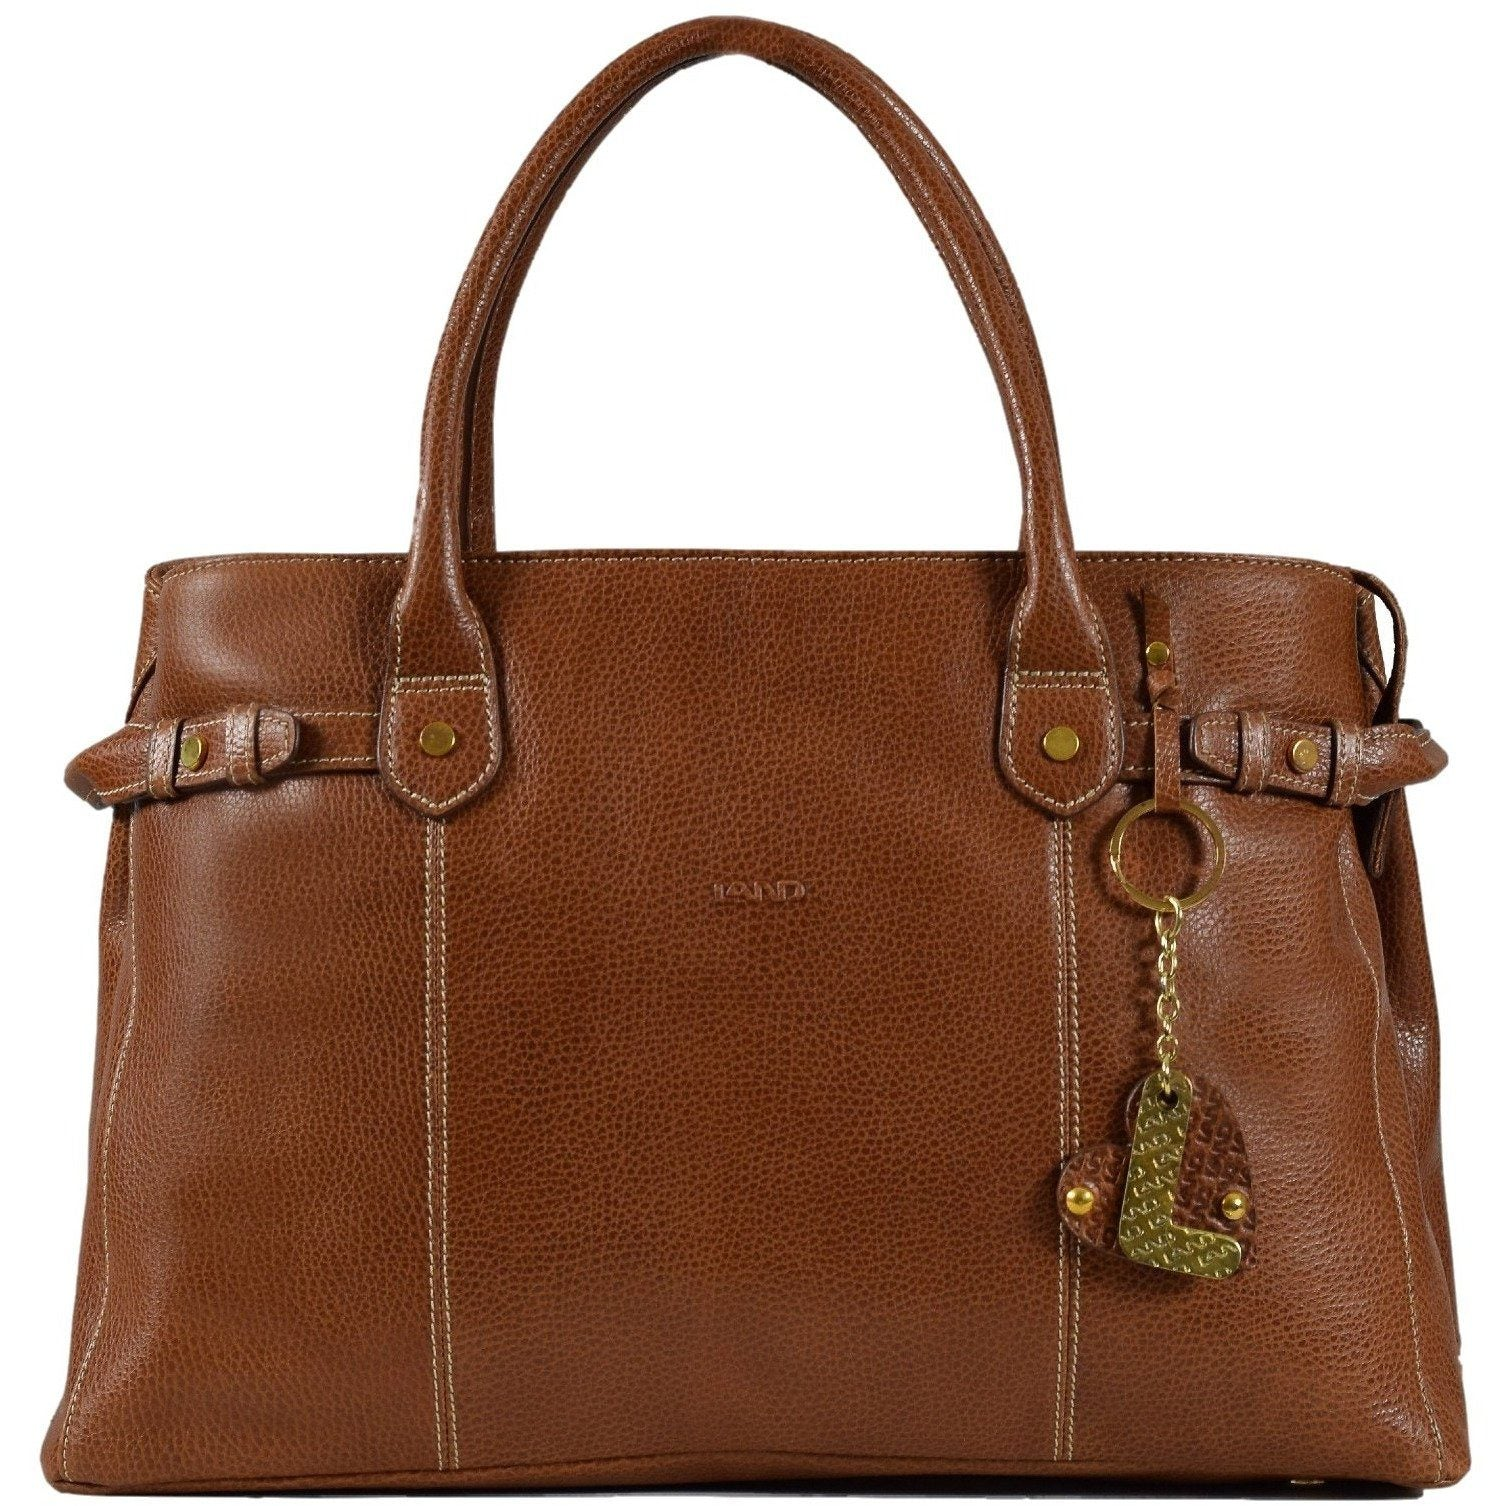 Bisenzio Stella Tote, Handbag | LAND Leather